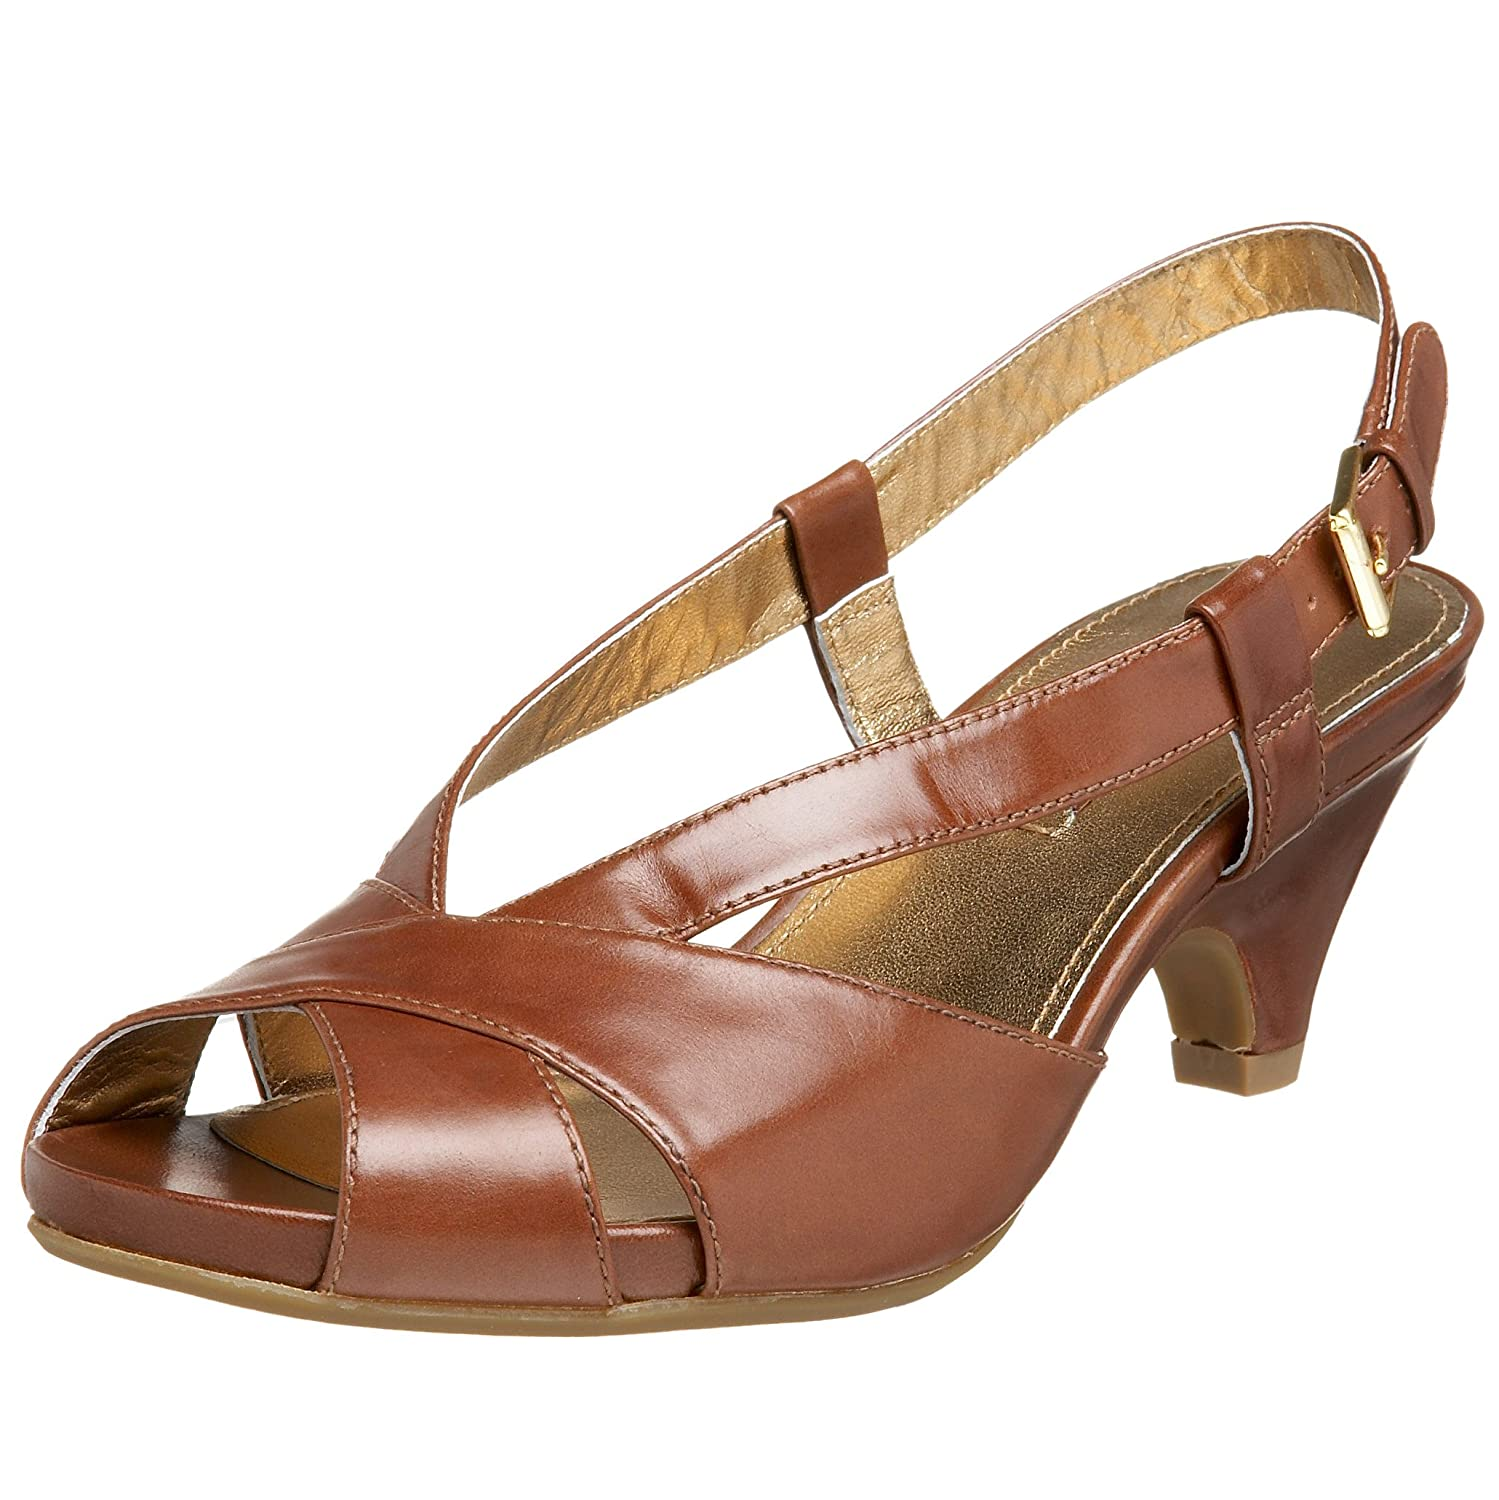 ECCO Women's Gracias Platform Peep Toe - Free Overnight Shipping & Return Shipping: Endless.com